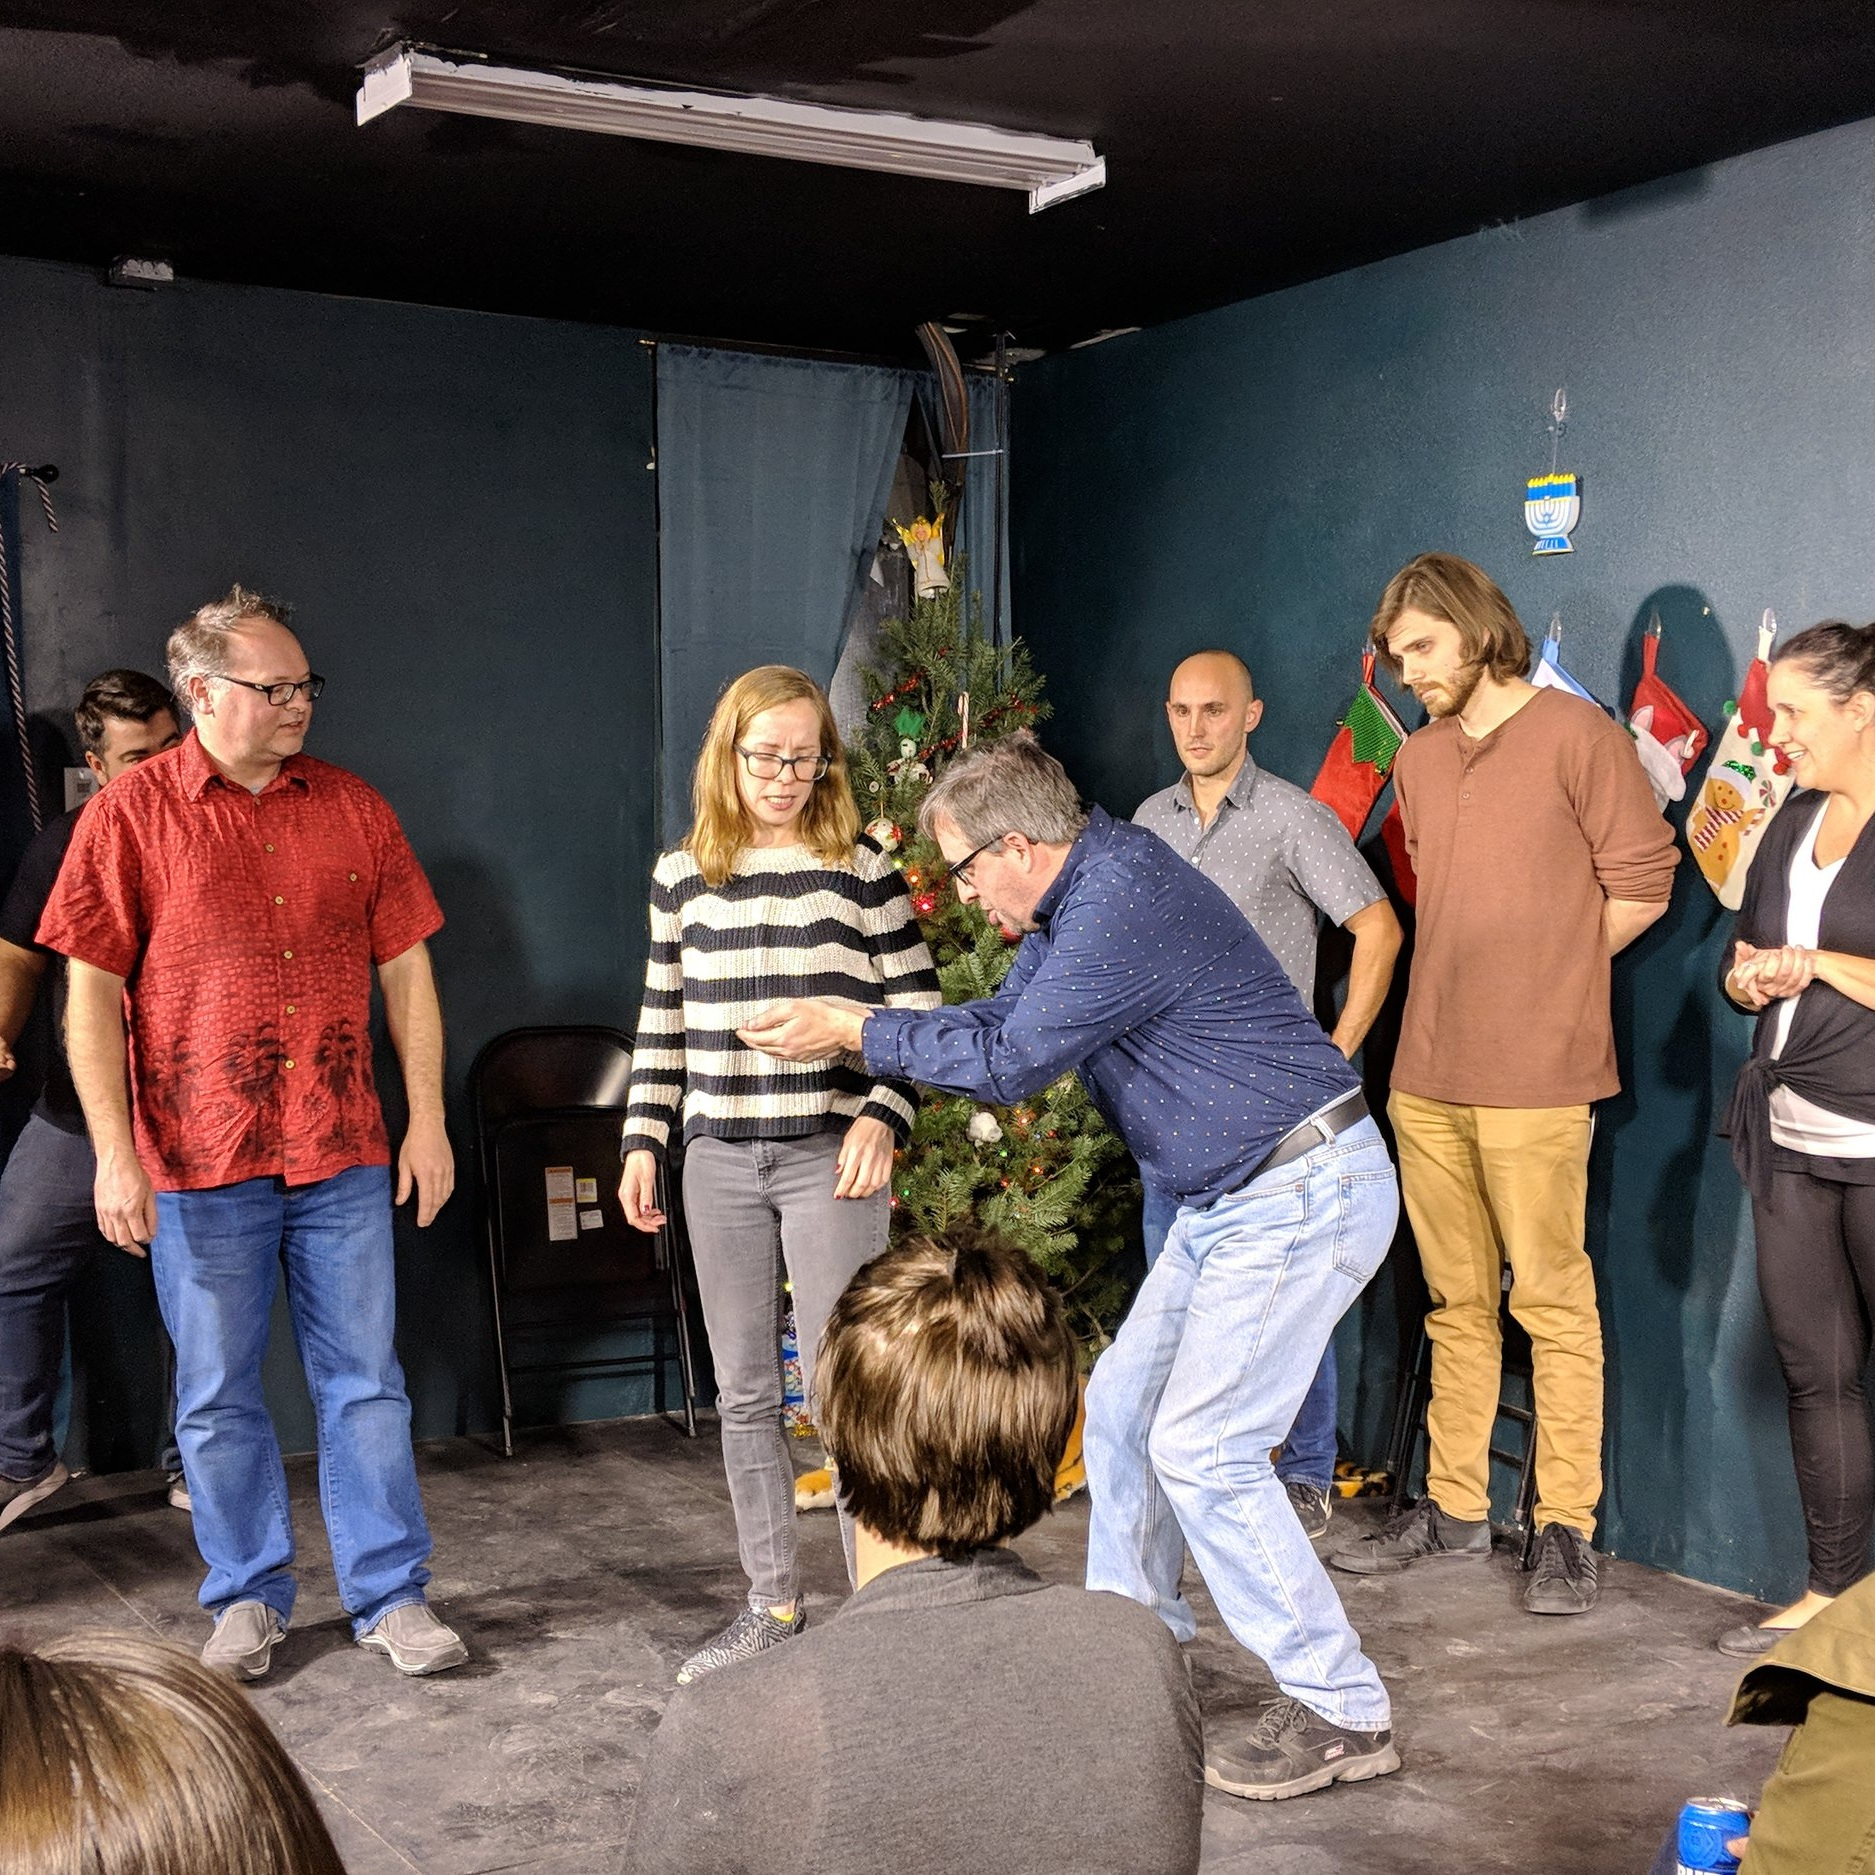 Lil' Stack of Pancakes   coached by    Daniel Horsey    Lil' Stack of Pancakes LOVES focusing on relationship-based narrative and just doing things! Check them out on Wednesdays at SYP Awesome Improv Show!